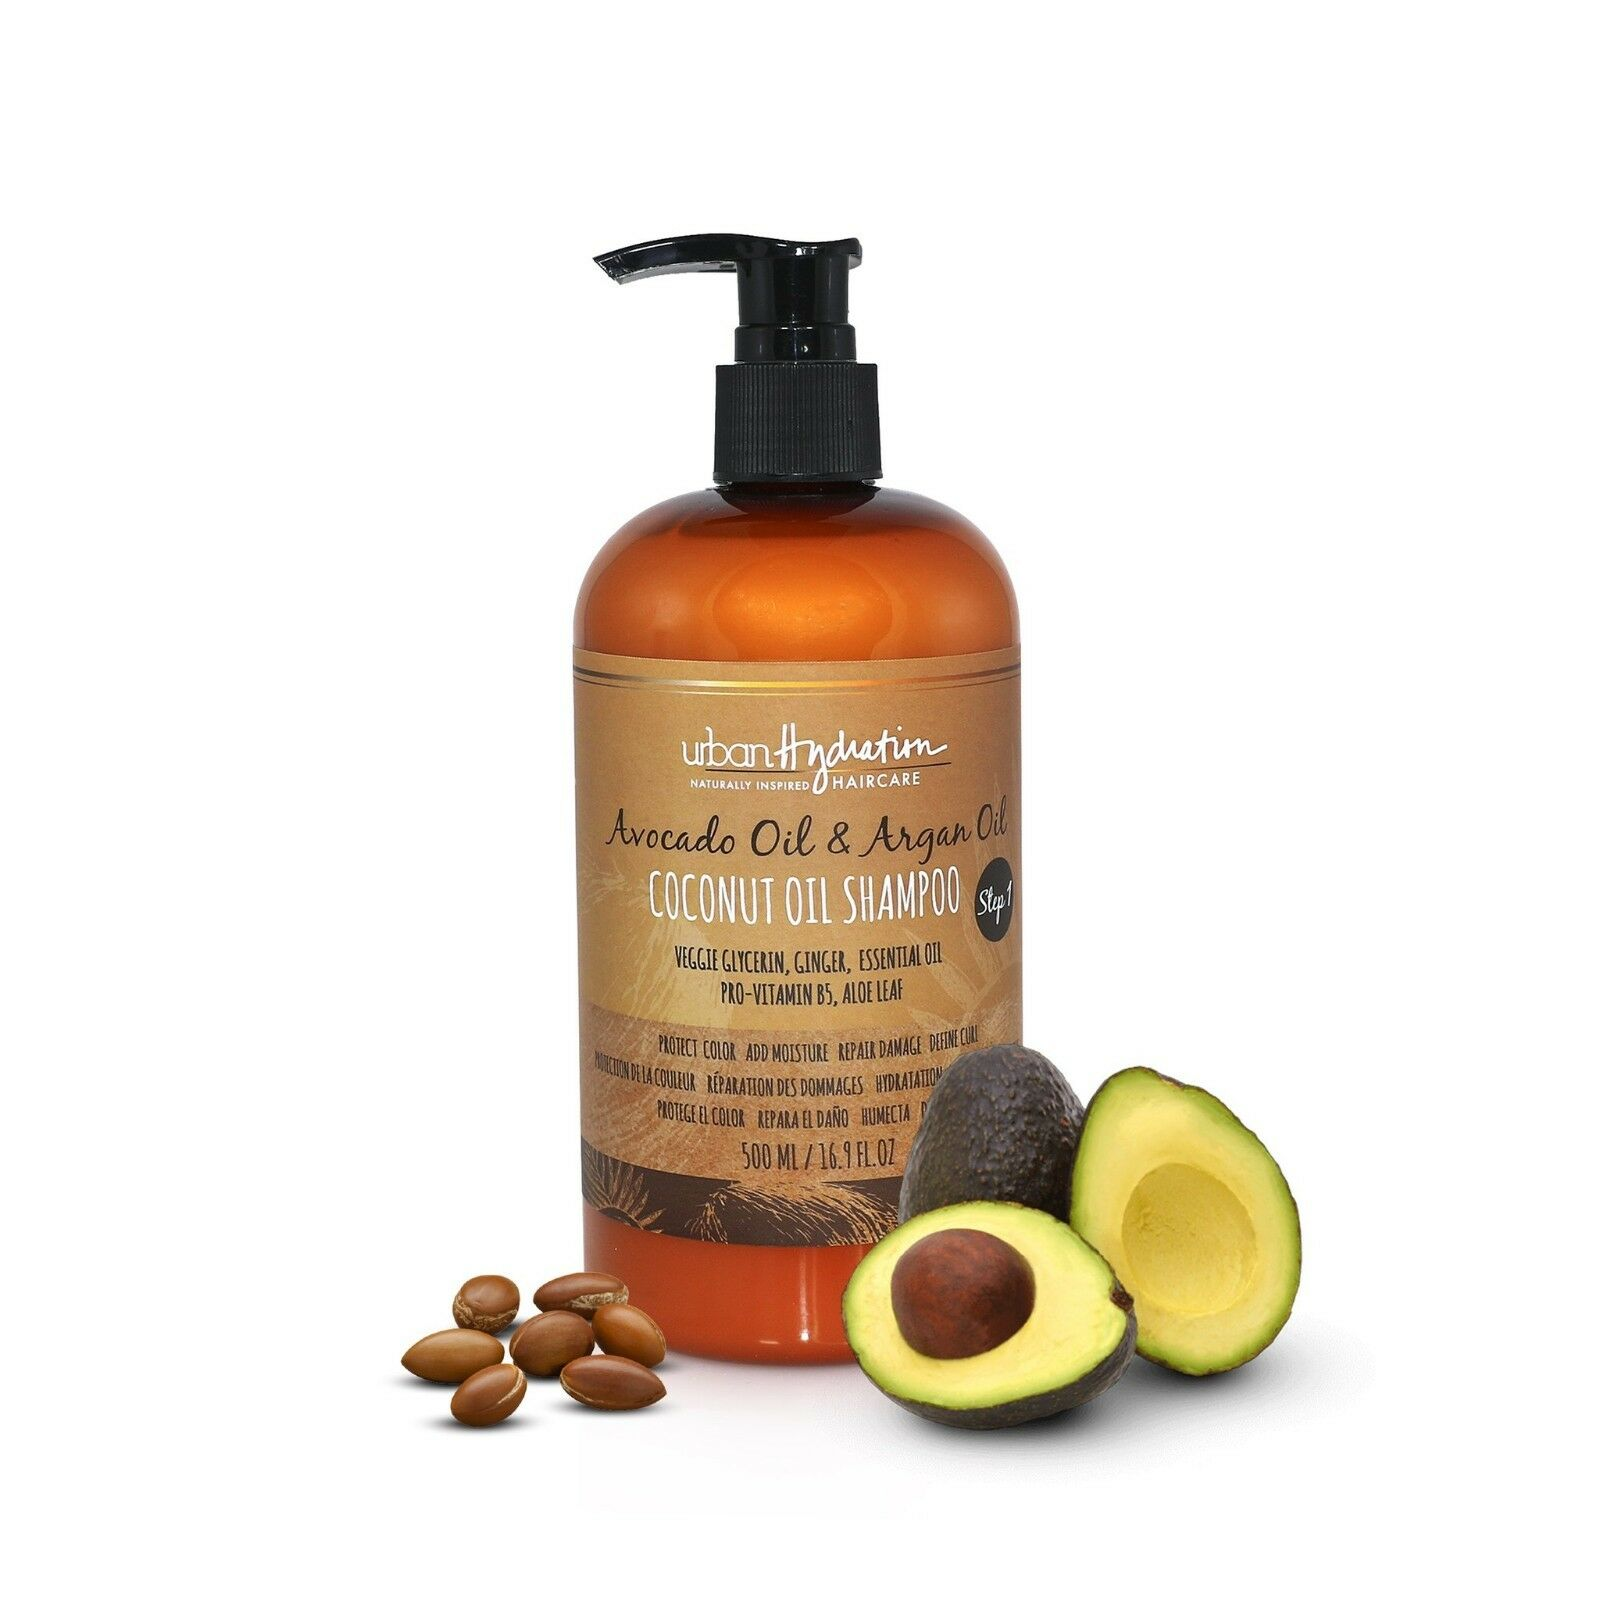 Urban Hydration Avocado Oil & Argan Oil Coconut Oil Shampoo 16.9oz Health & Beauty